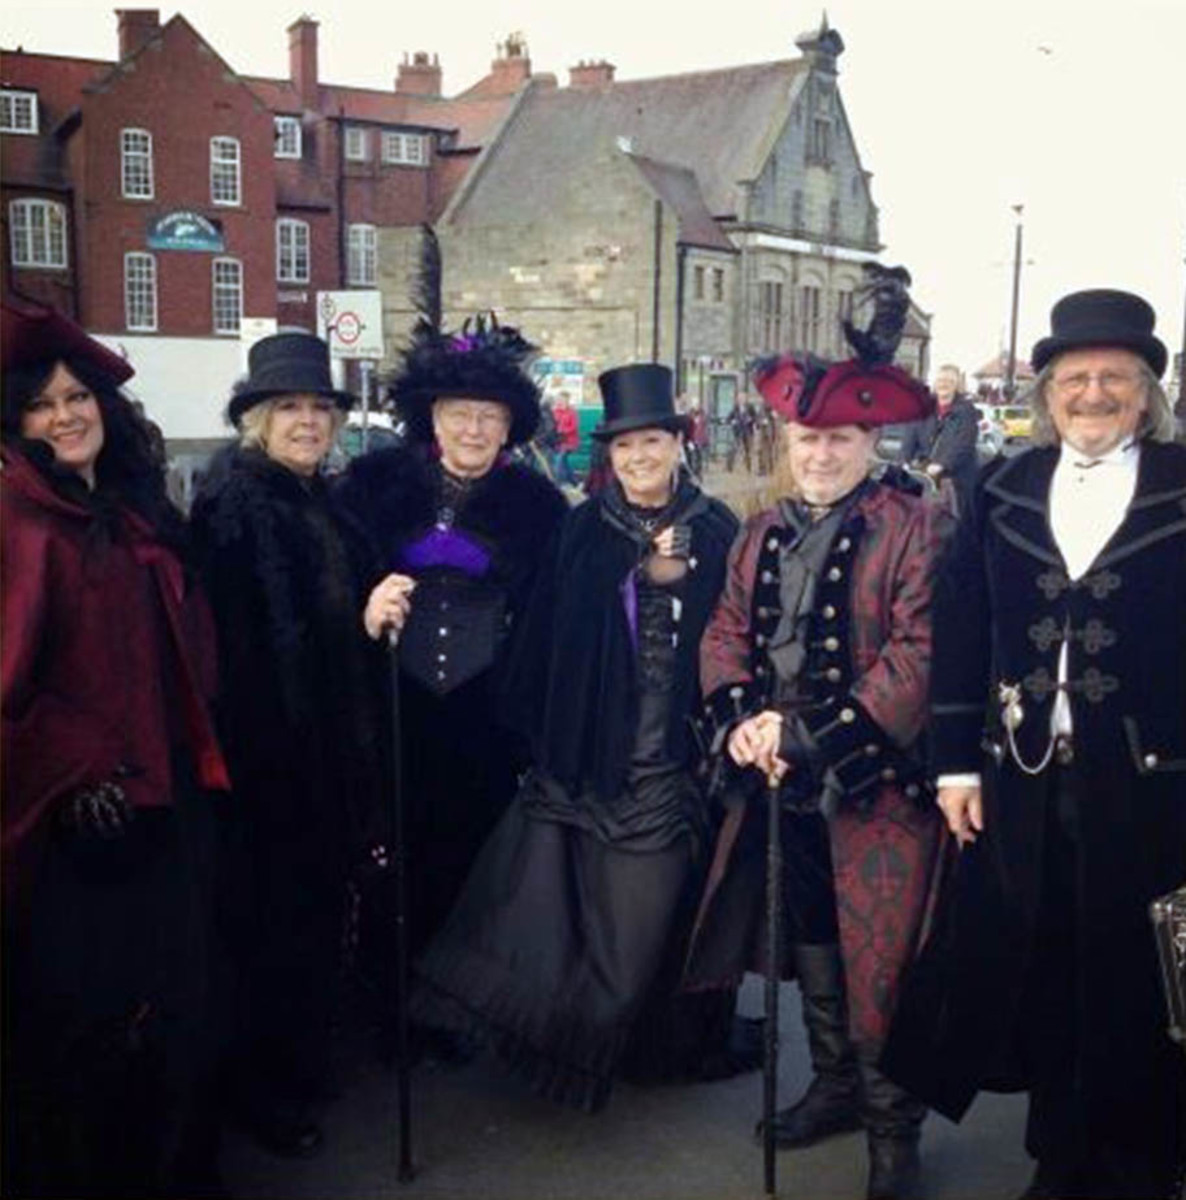 Whitby Goth Weekend, November 2013 - people like to dress up in Victorian outfits and dark make-up to commemorate Dracula Week